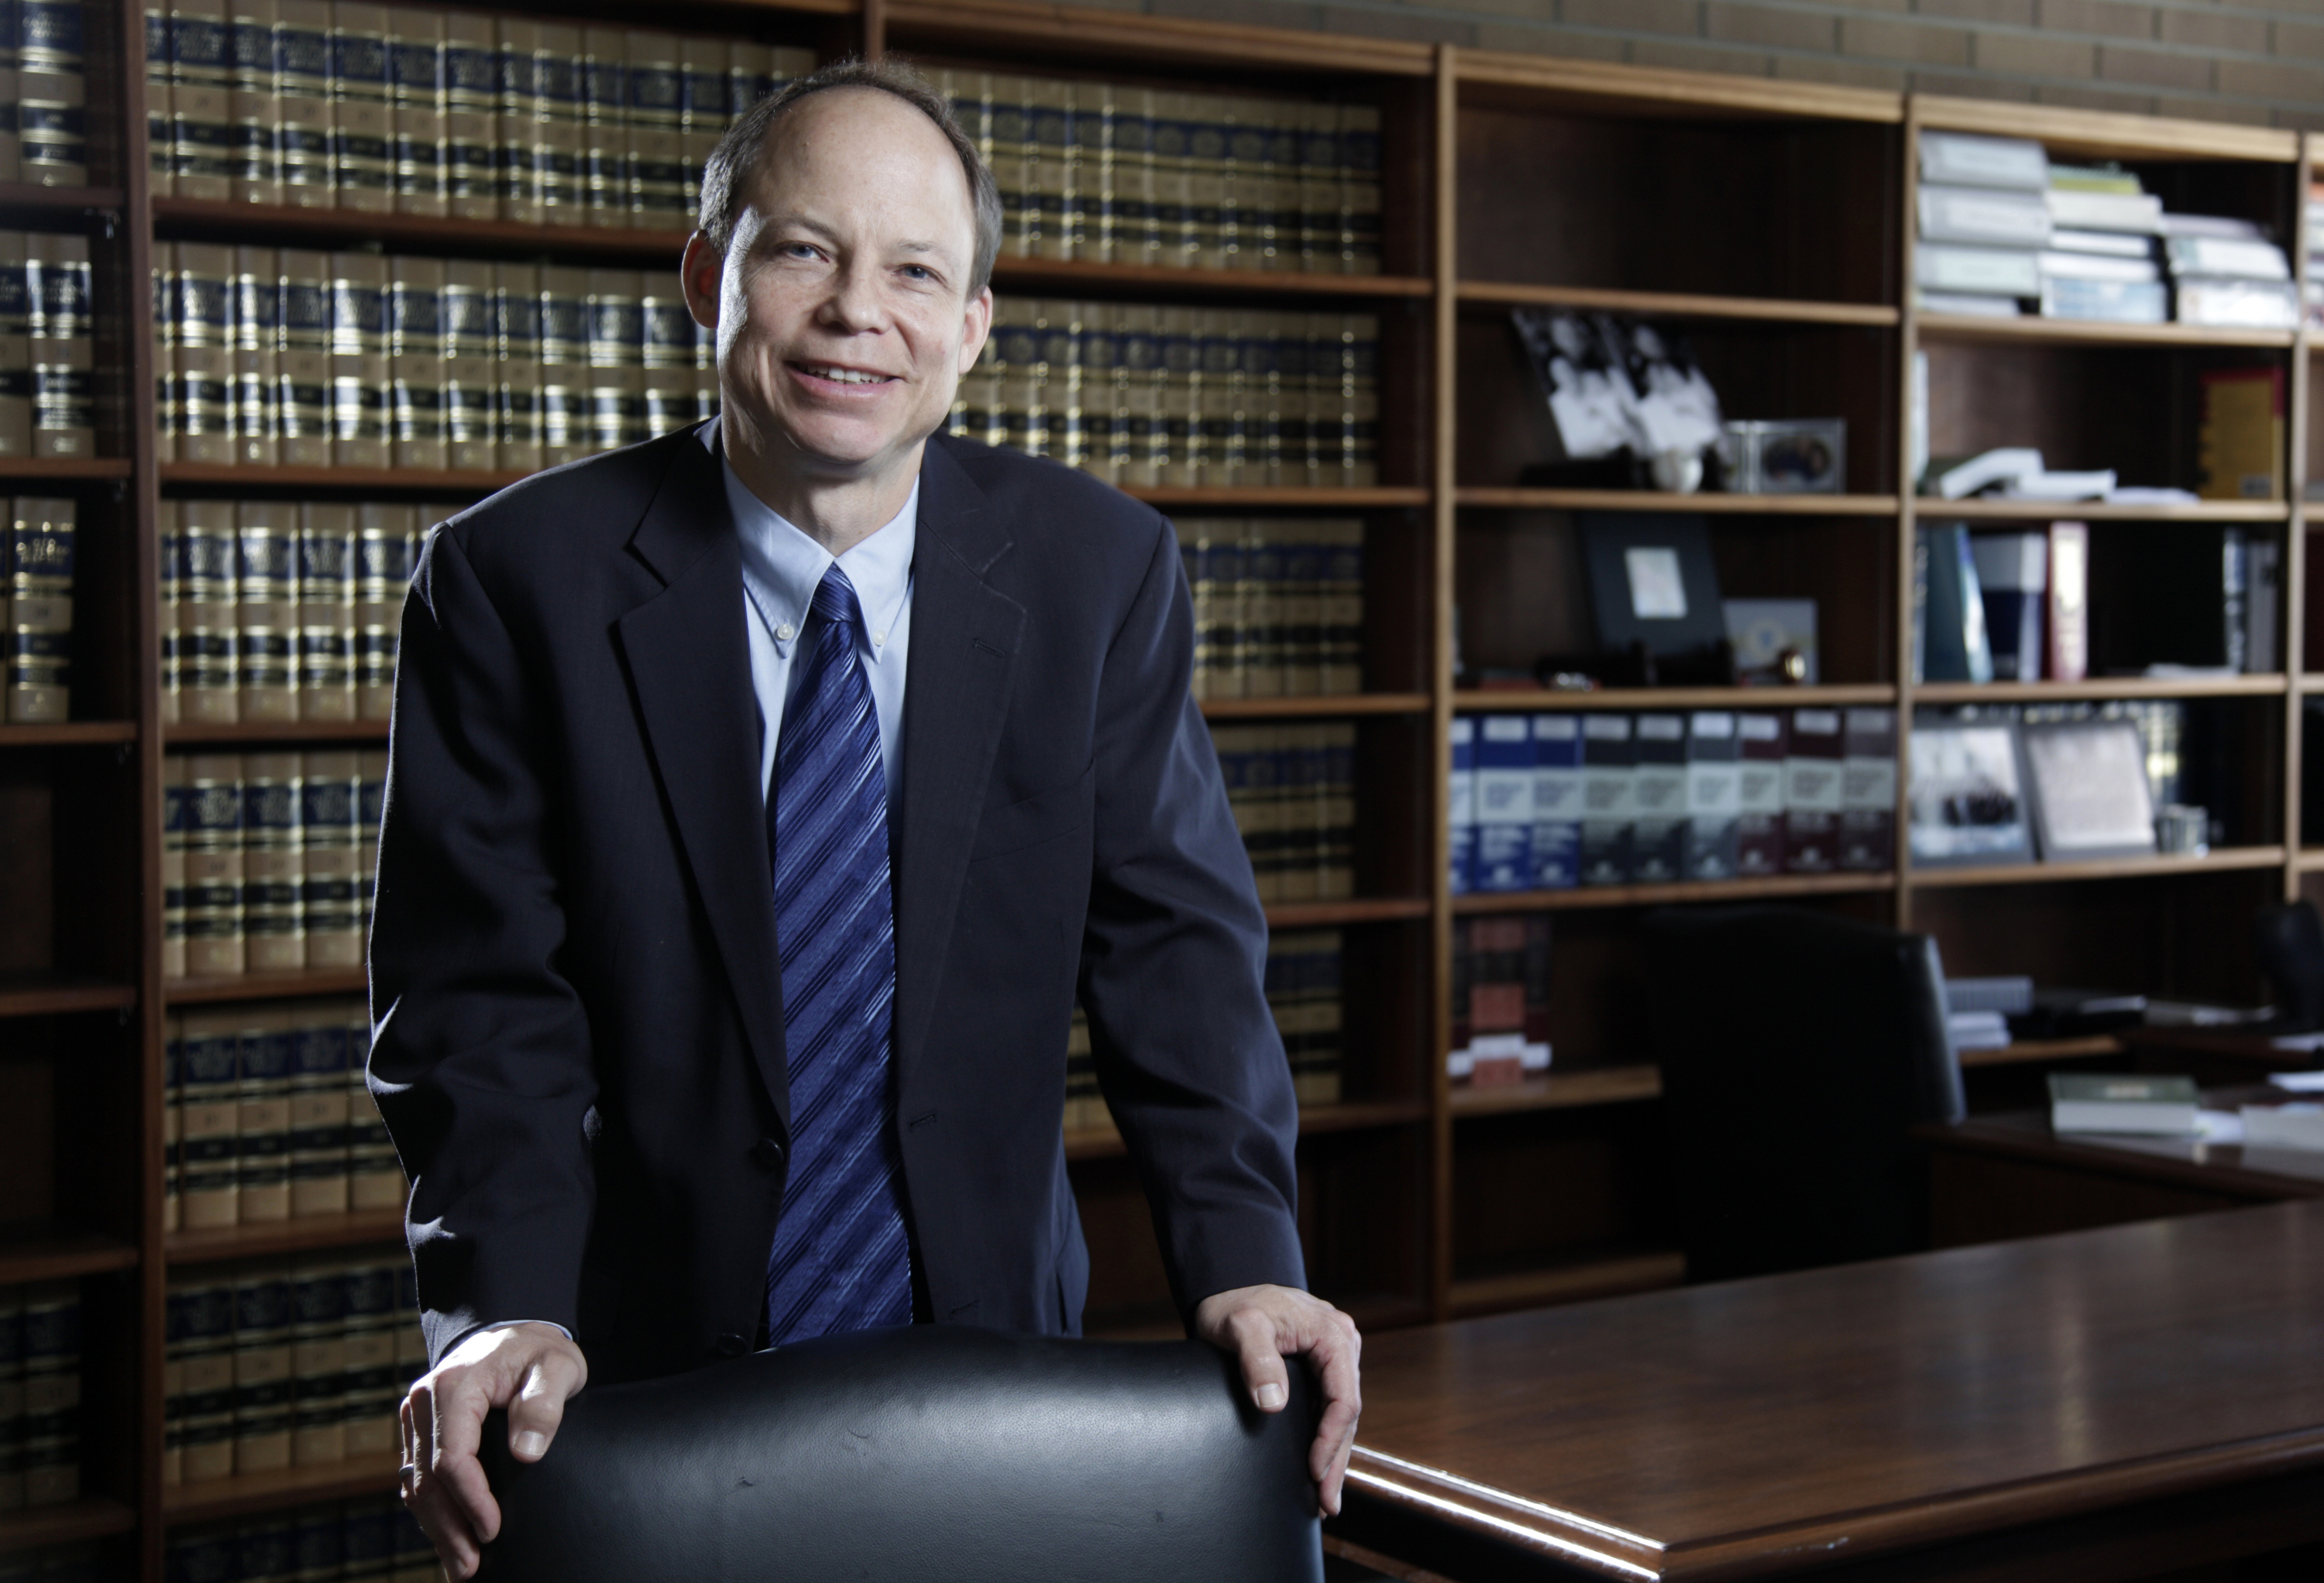 Santa Clara County Superior Court Judge Aaron Persky on June 27, 2011.